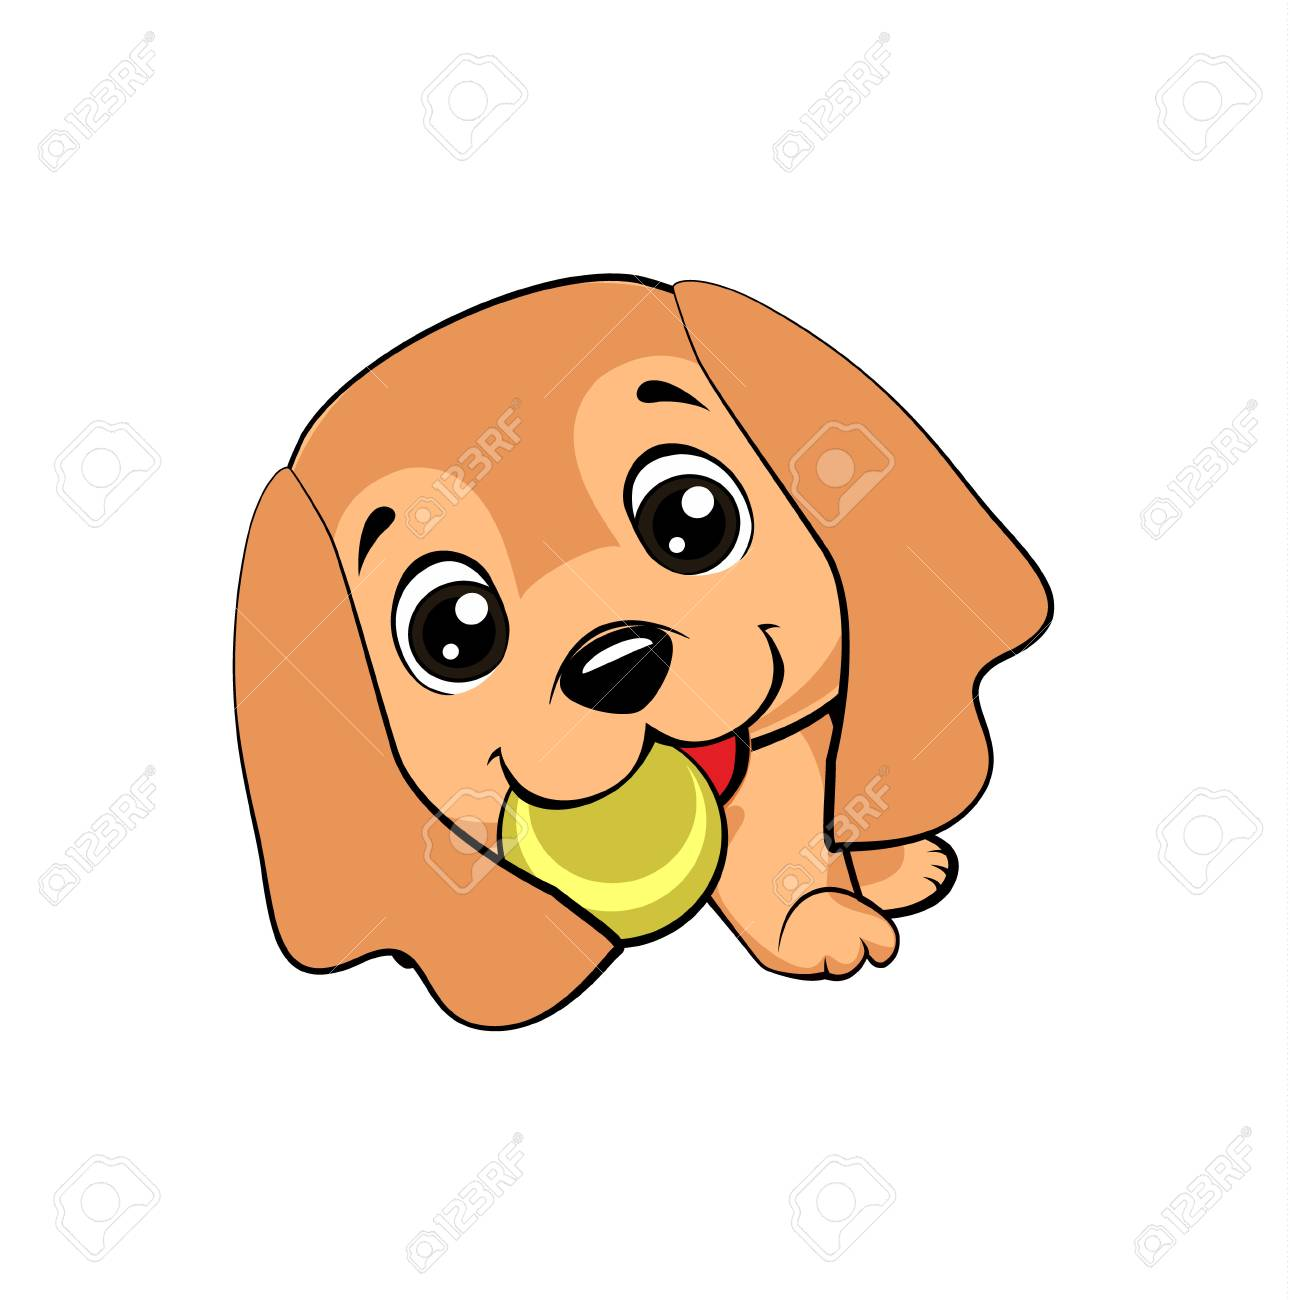 English Cocker Spaniel Dog Vector Cartoon Style Drawing Of A Royalty Free Cliparts Vectors And Stock Illustration Image 108408126